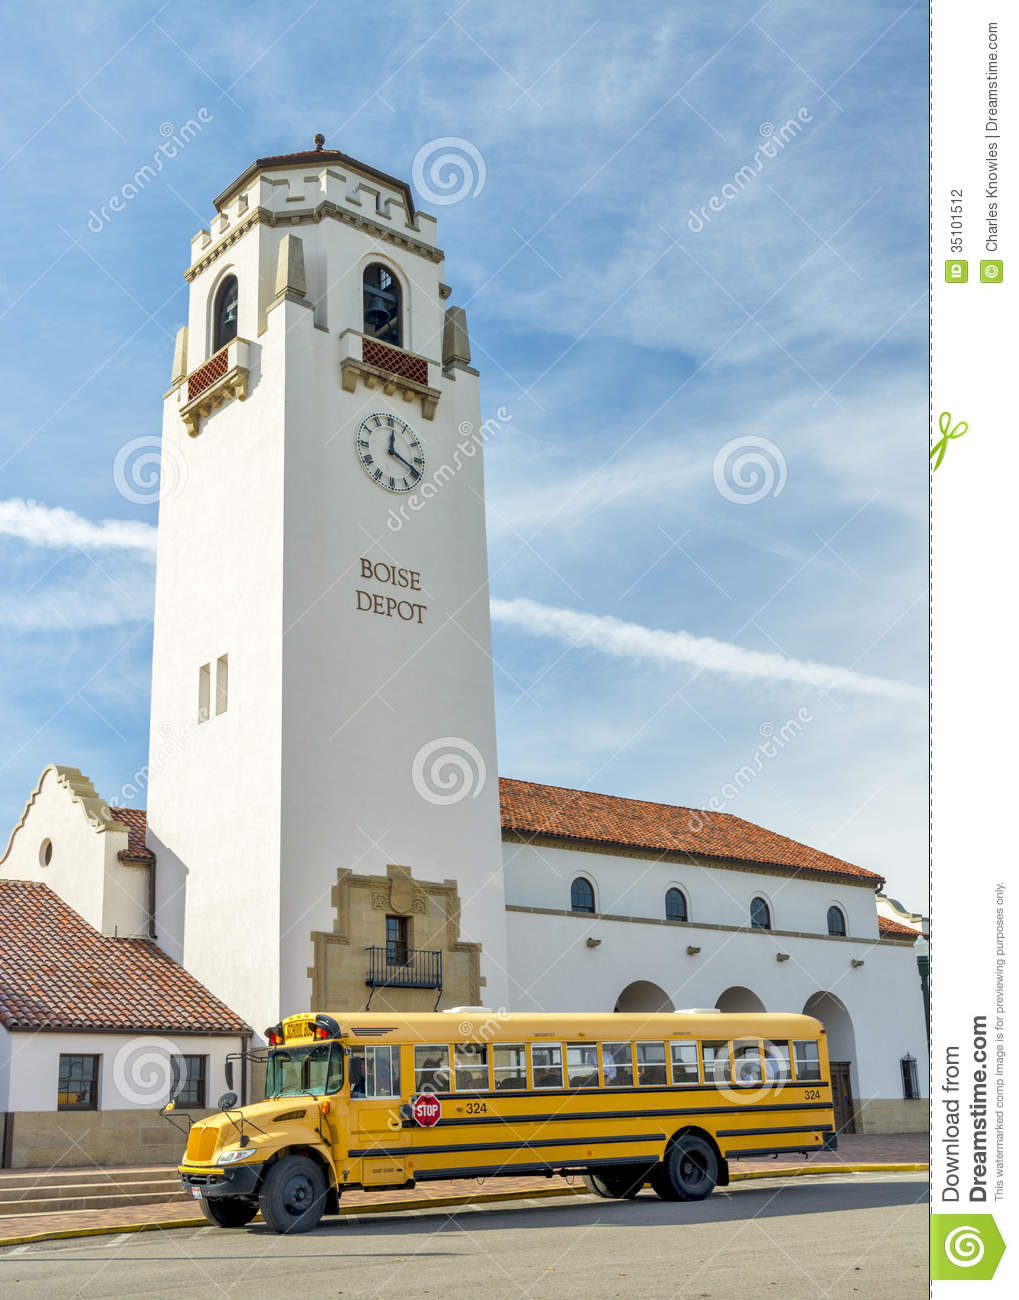 school bus and boise train depot stock photo image 35101512. Black Bedroom Furniture Sets. Home Design Ideas